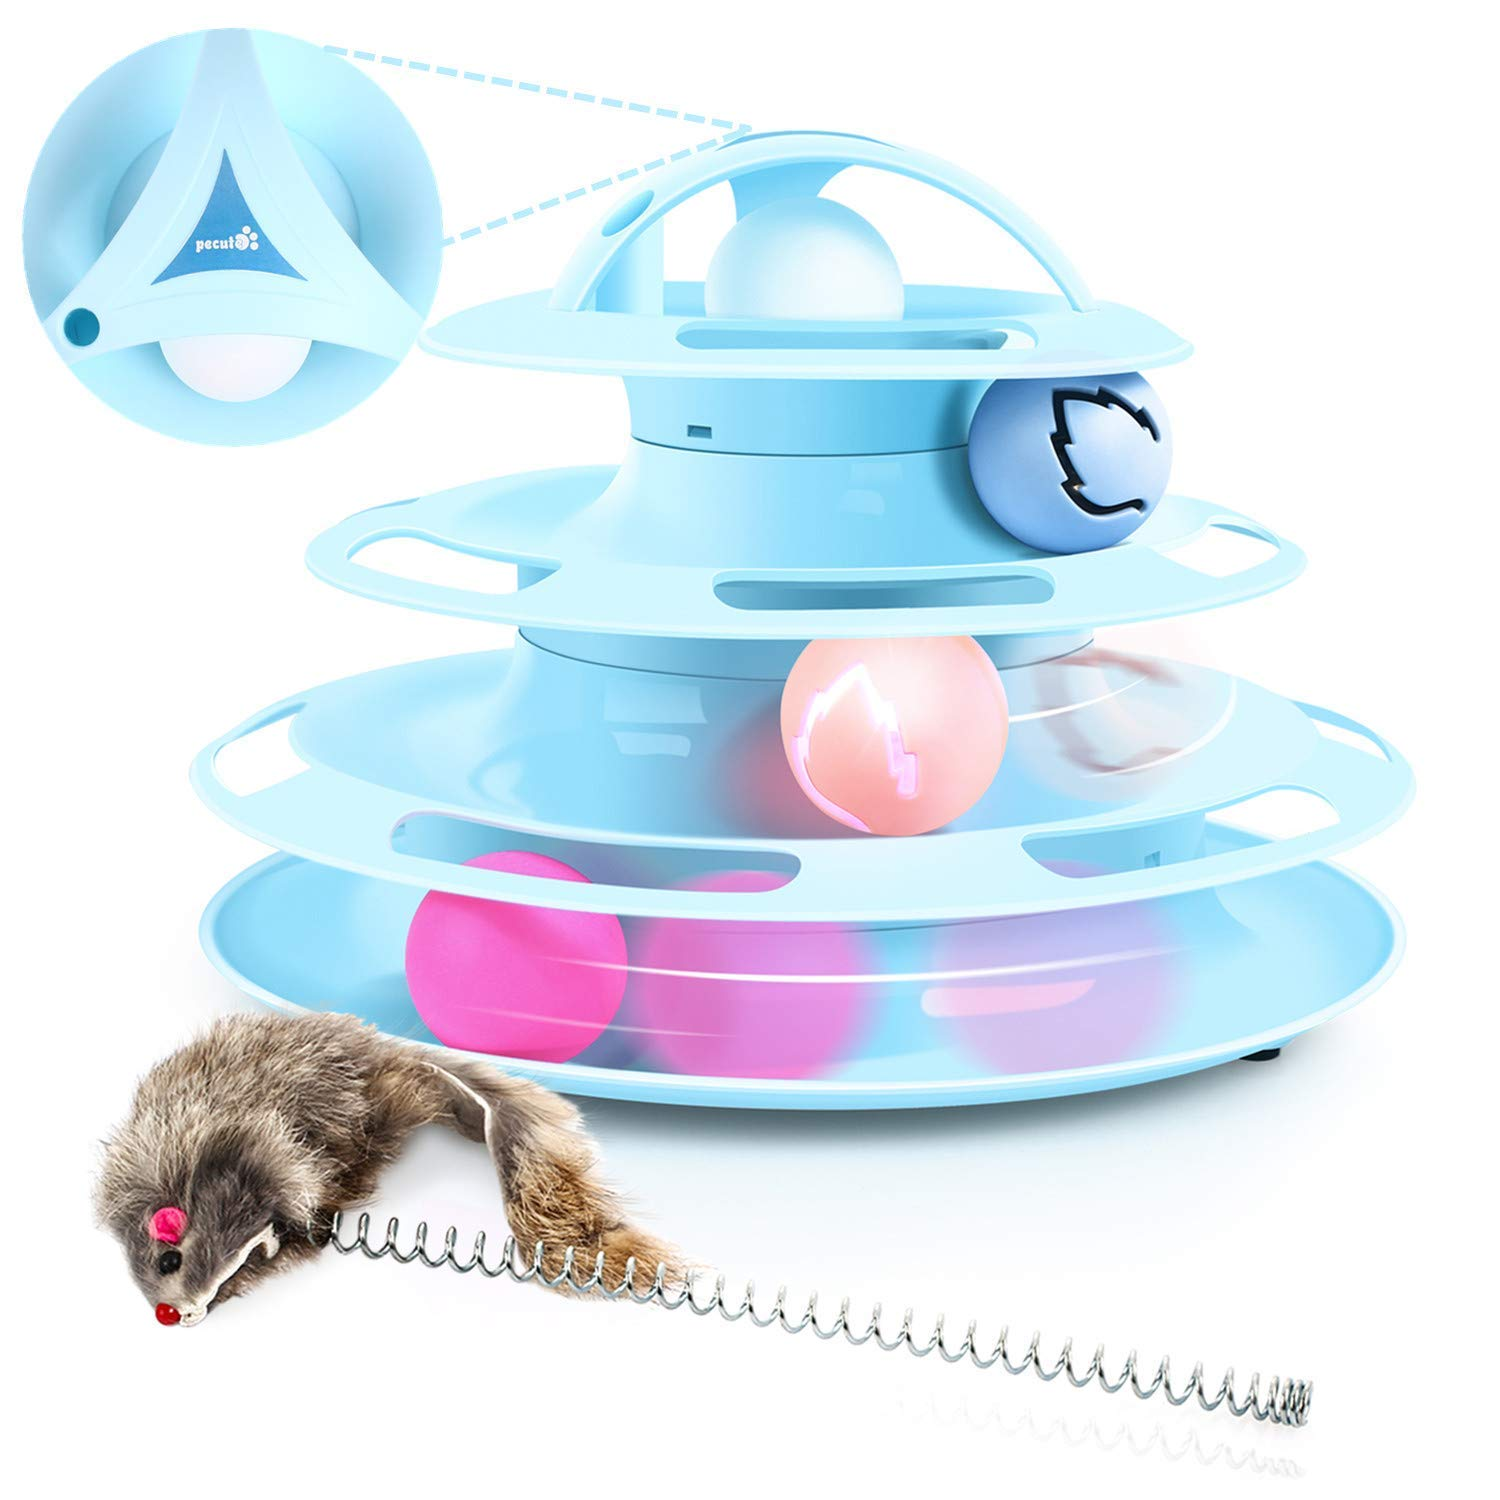 Pecute Cat Toy Cat Turntable Ball, 4 Layers 4 Balls, with Cat Mint & Mouse Playing Cat Sticks, Anti-Skid Detachable